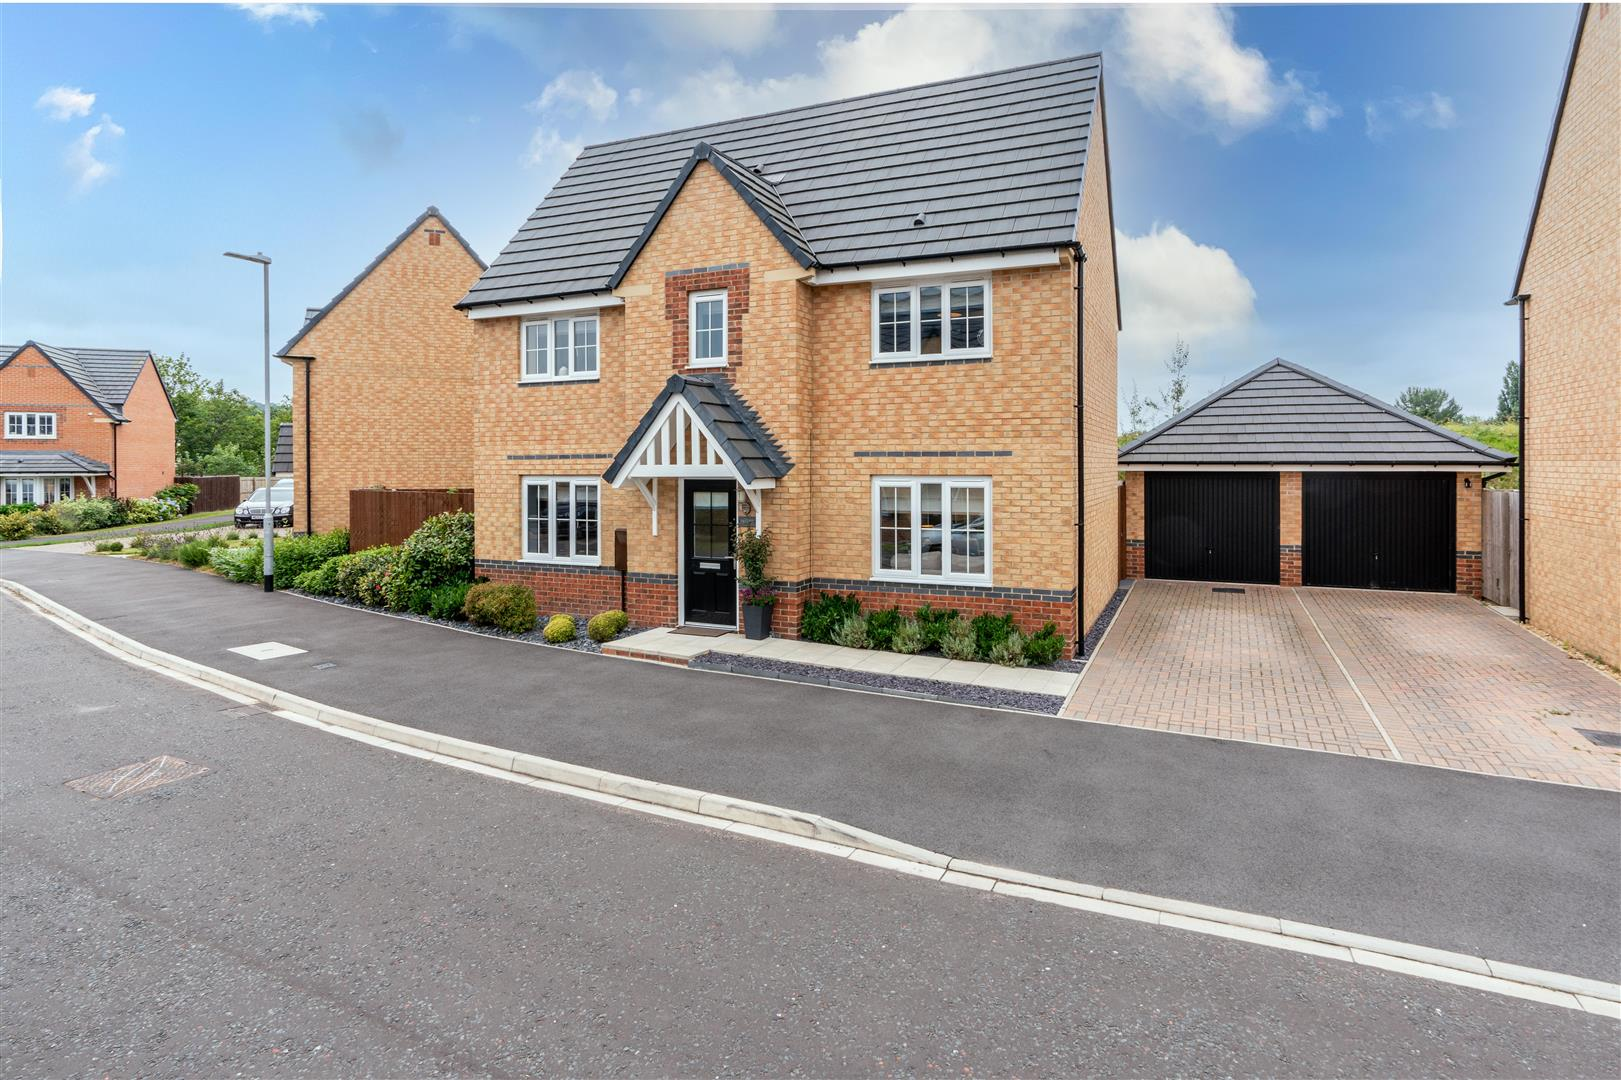 3 bed detached house for sale in Ropery Road, Gateshead, NE8